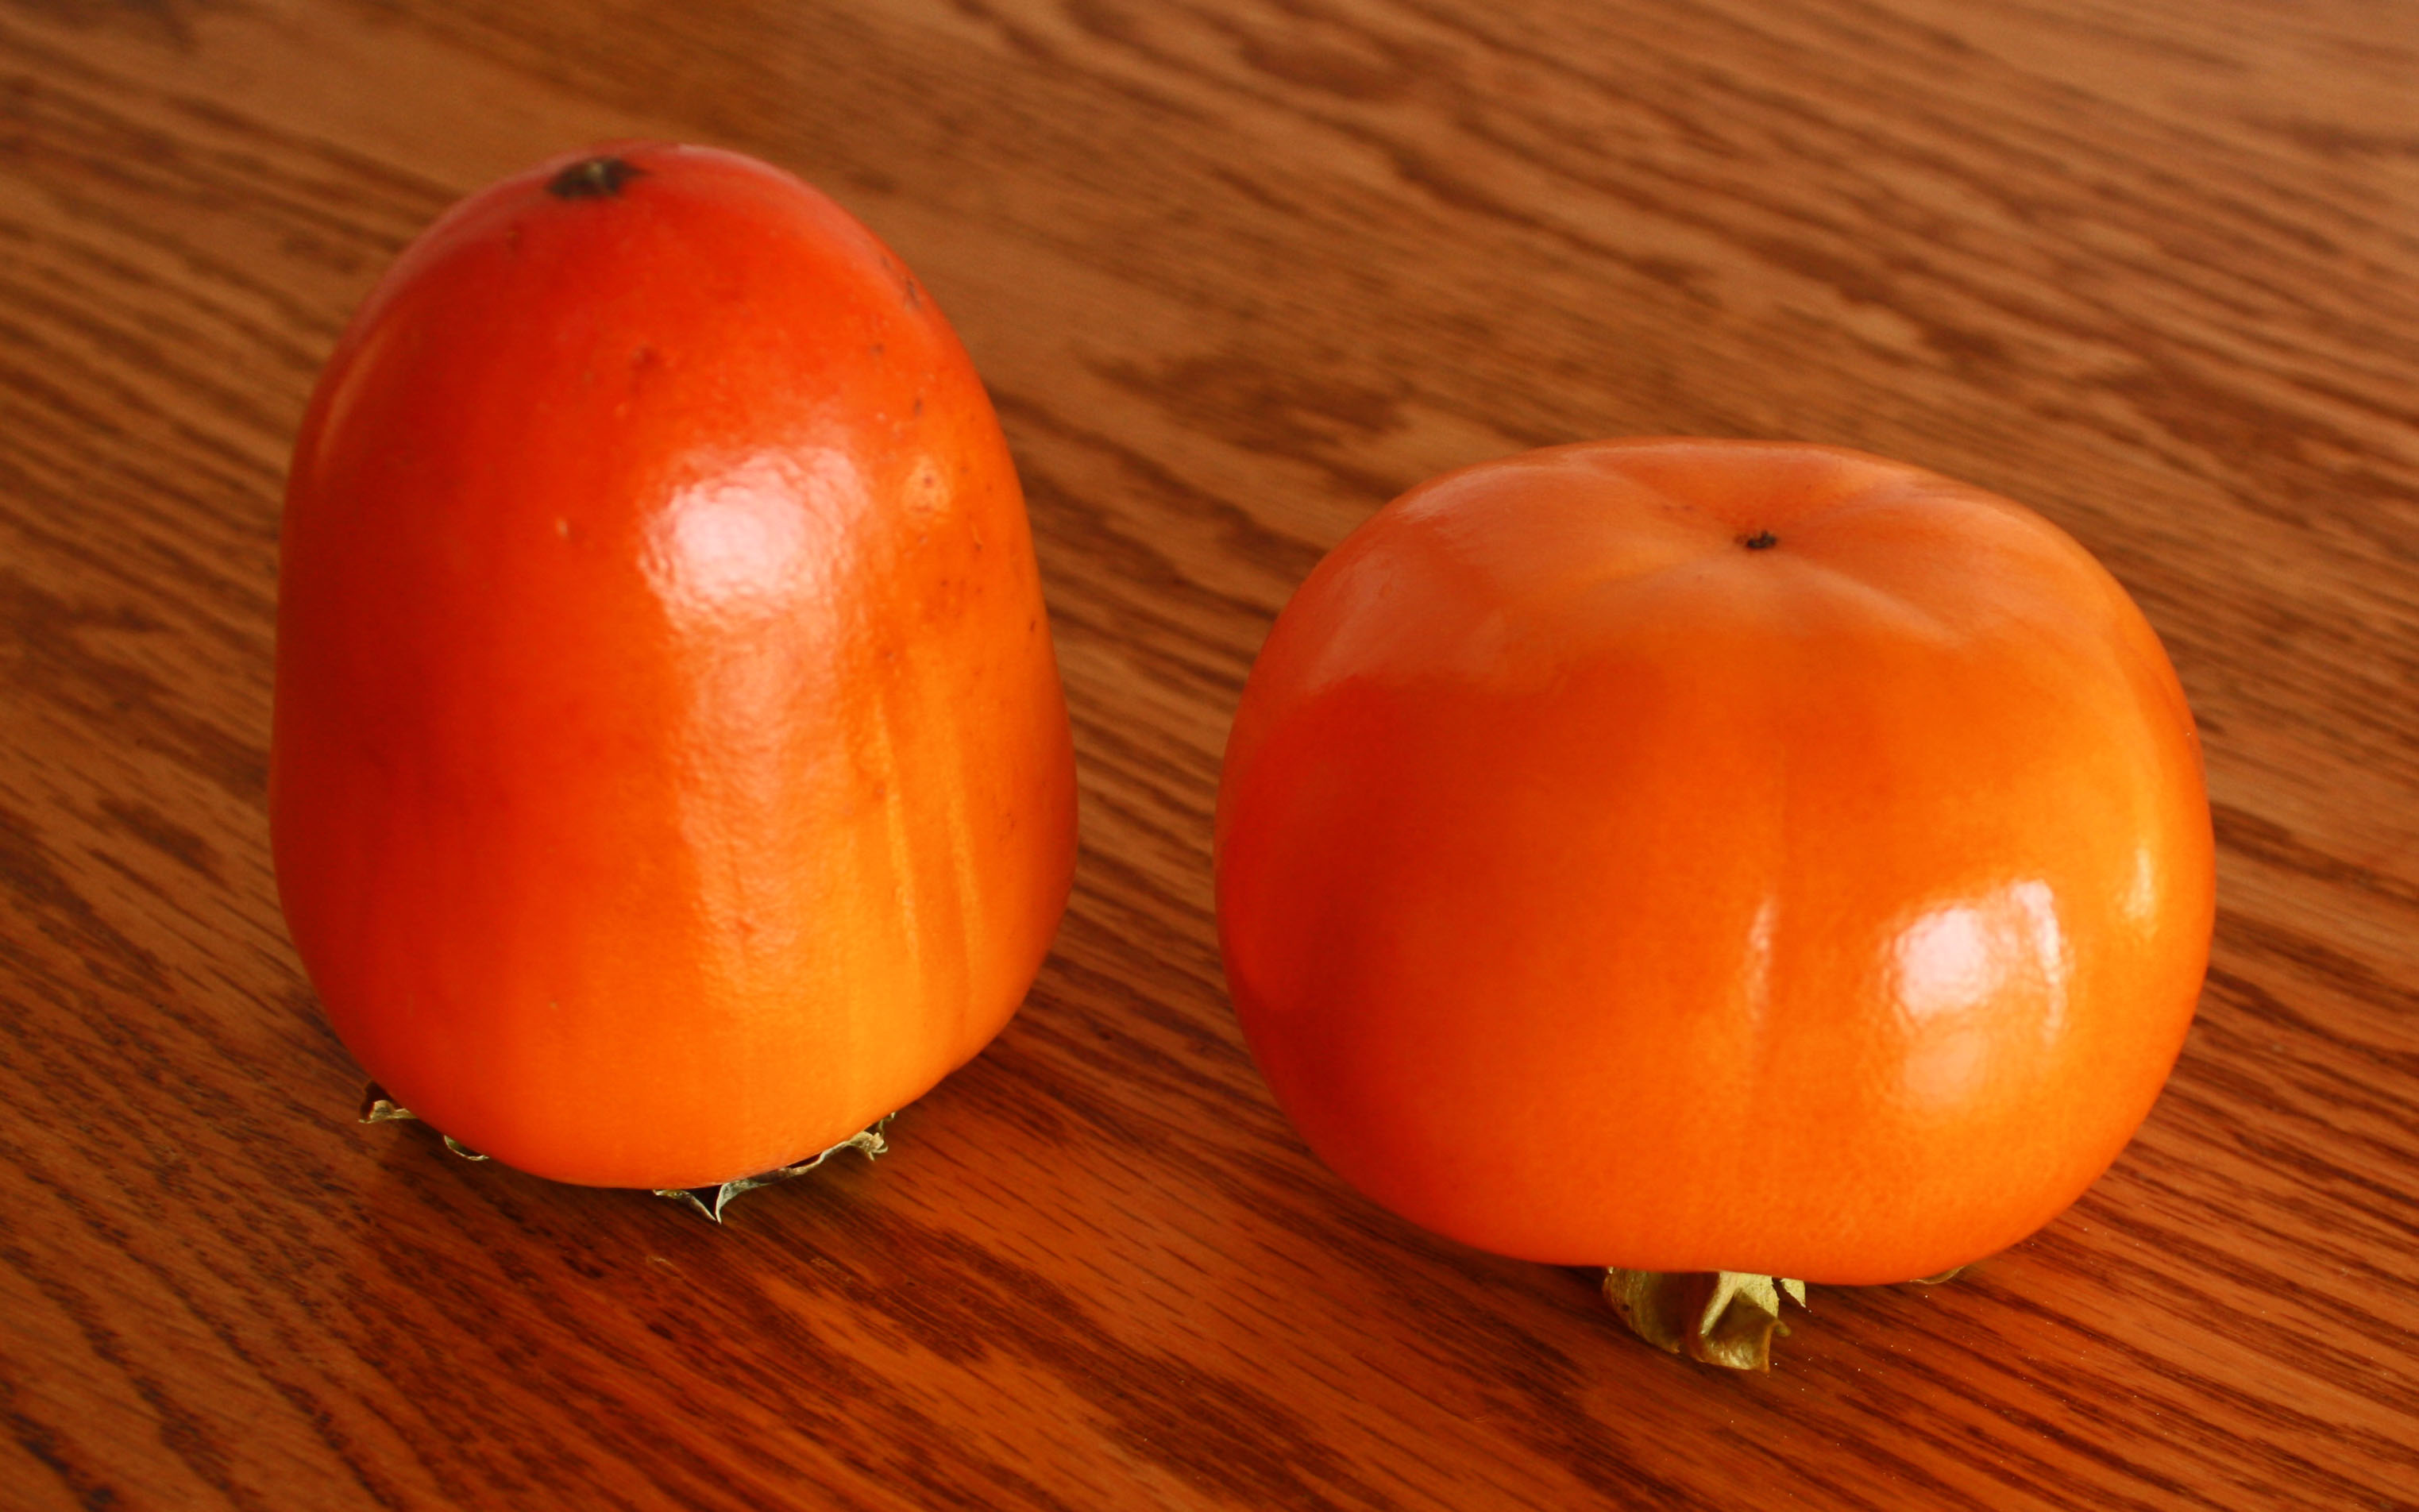 Fuyu Persimmon on the Fuyu Persimmons